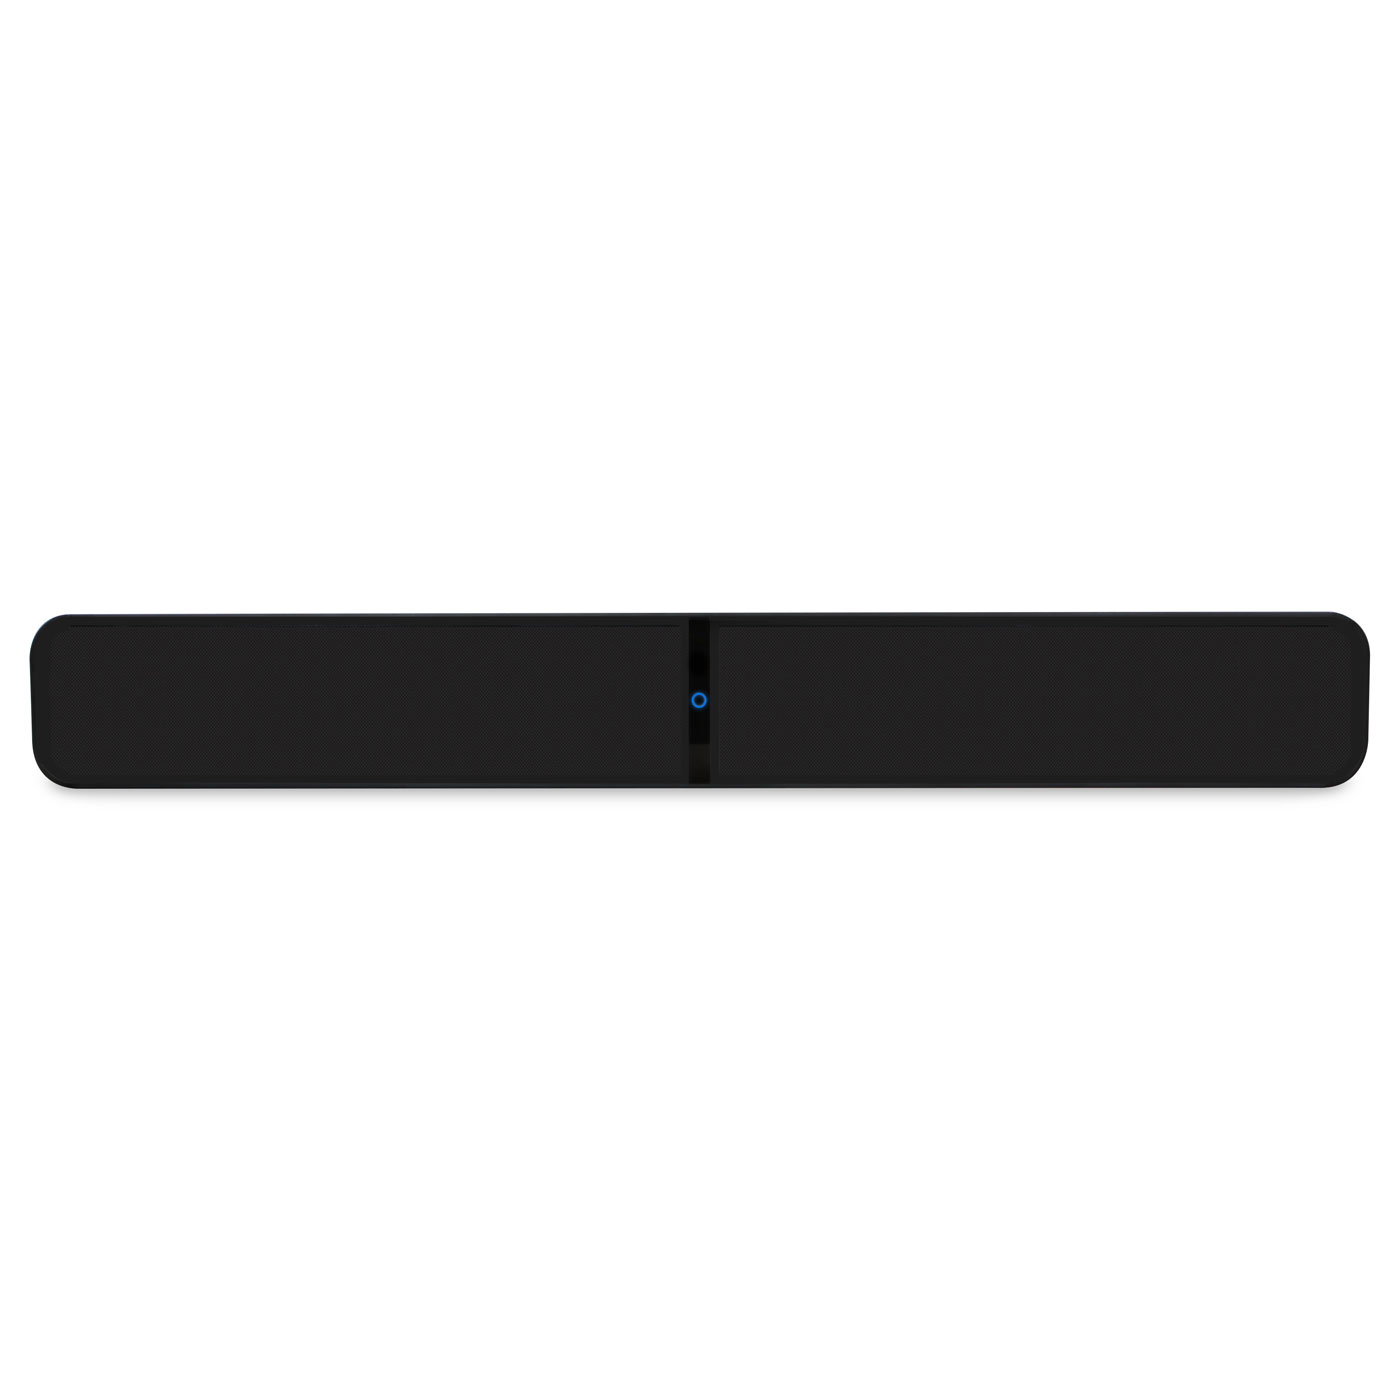 Barre de son Bluesound Pulse Soundbar Barre de son 120W Hi-Res Audio Wi-Fi, Ethernet et Bluetooth AptX